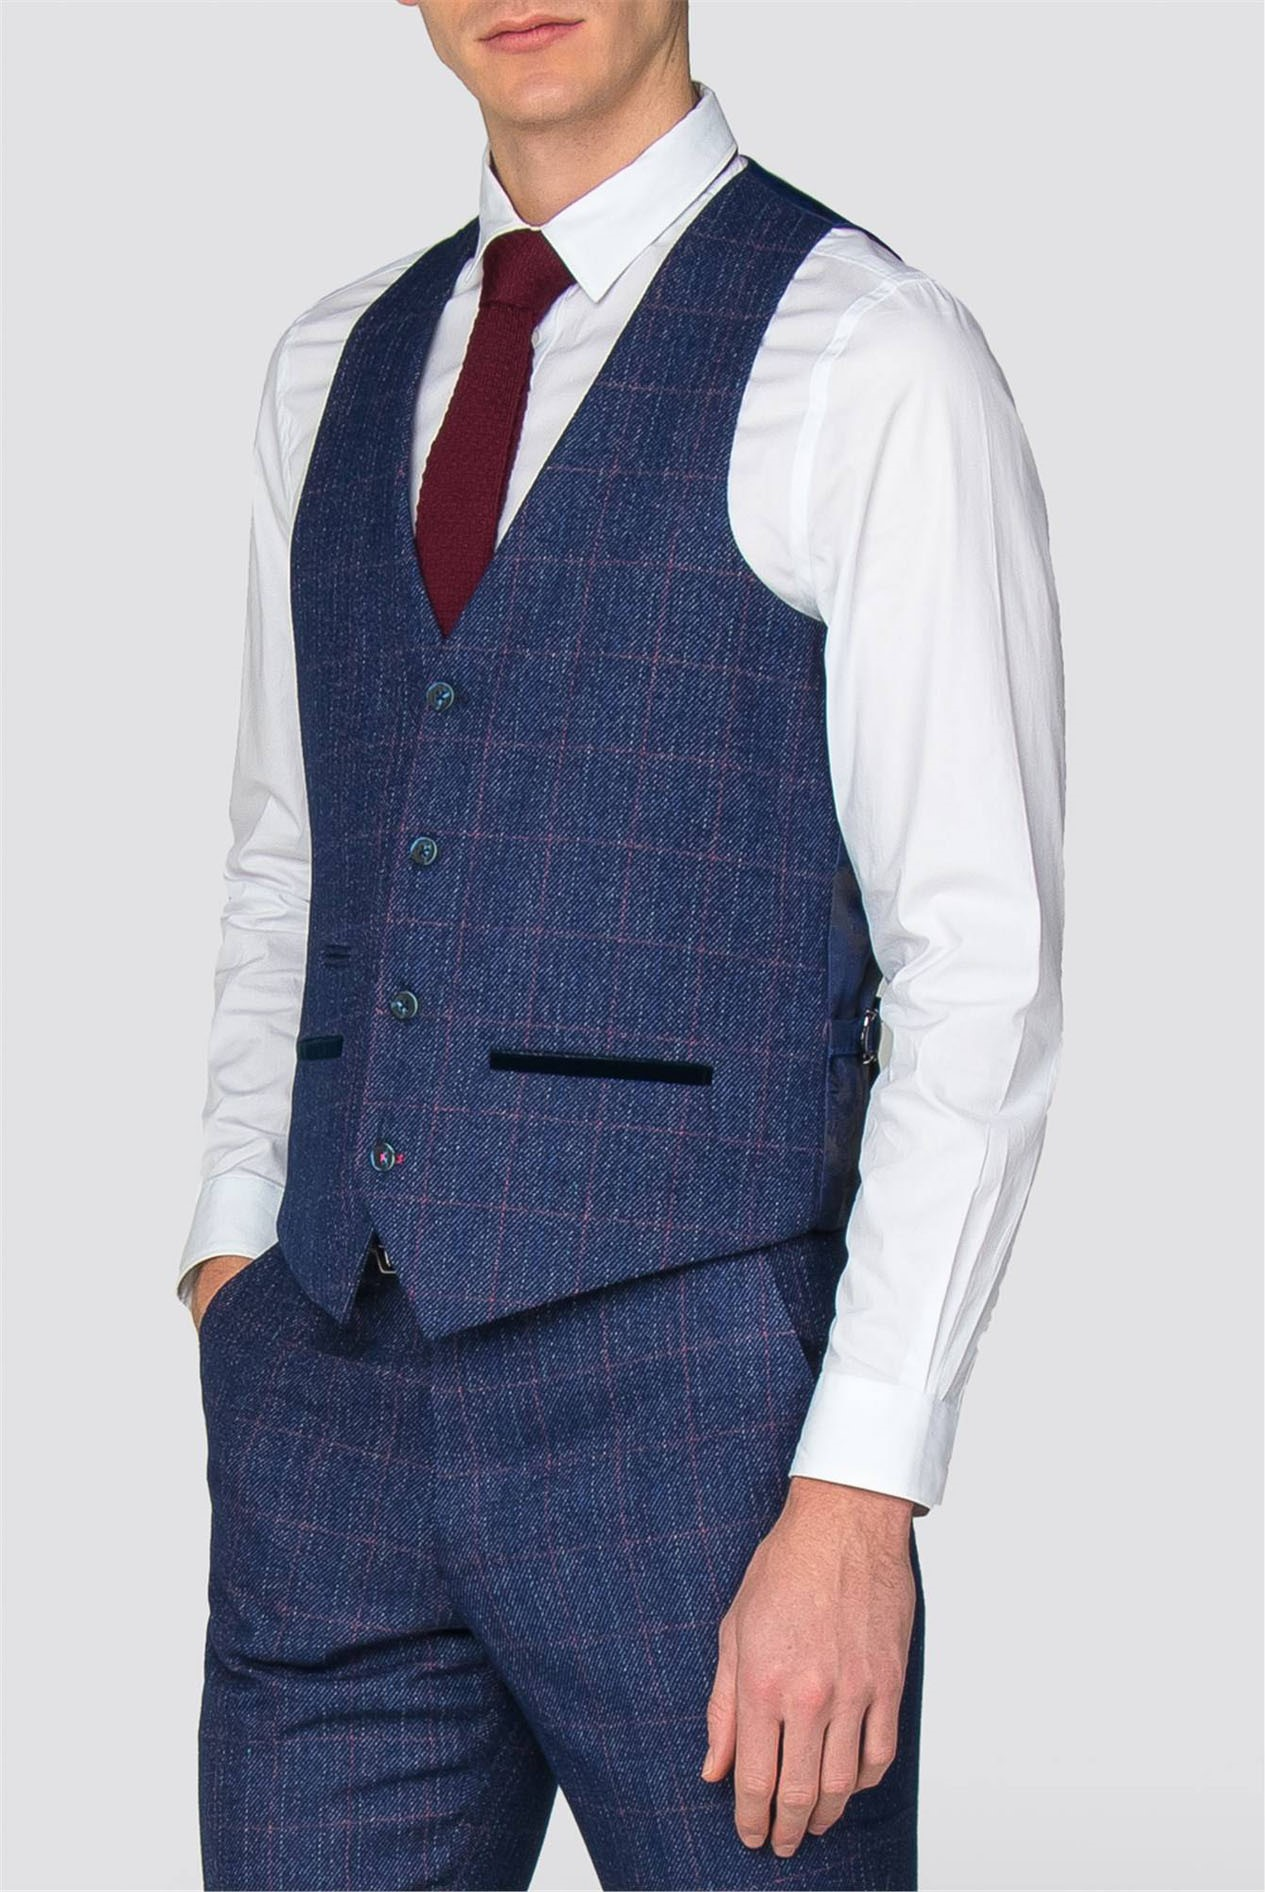 Mens Single Breasted Waistcoat Black Marc Darcy Slim Fit Formal Tailored Vest